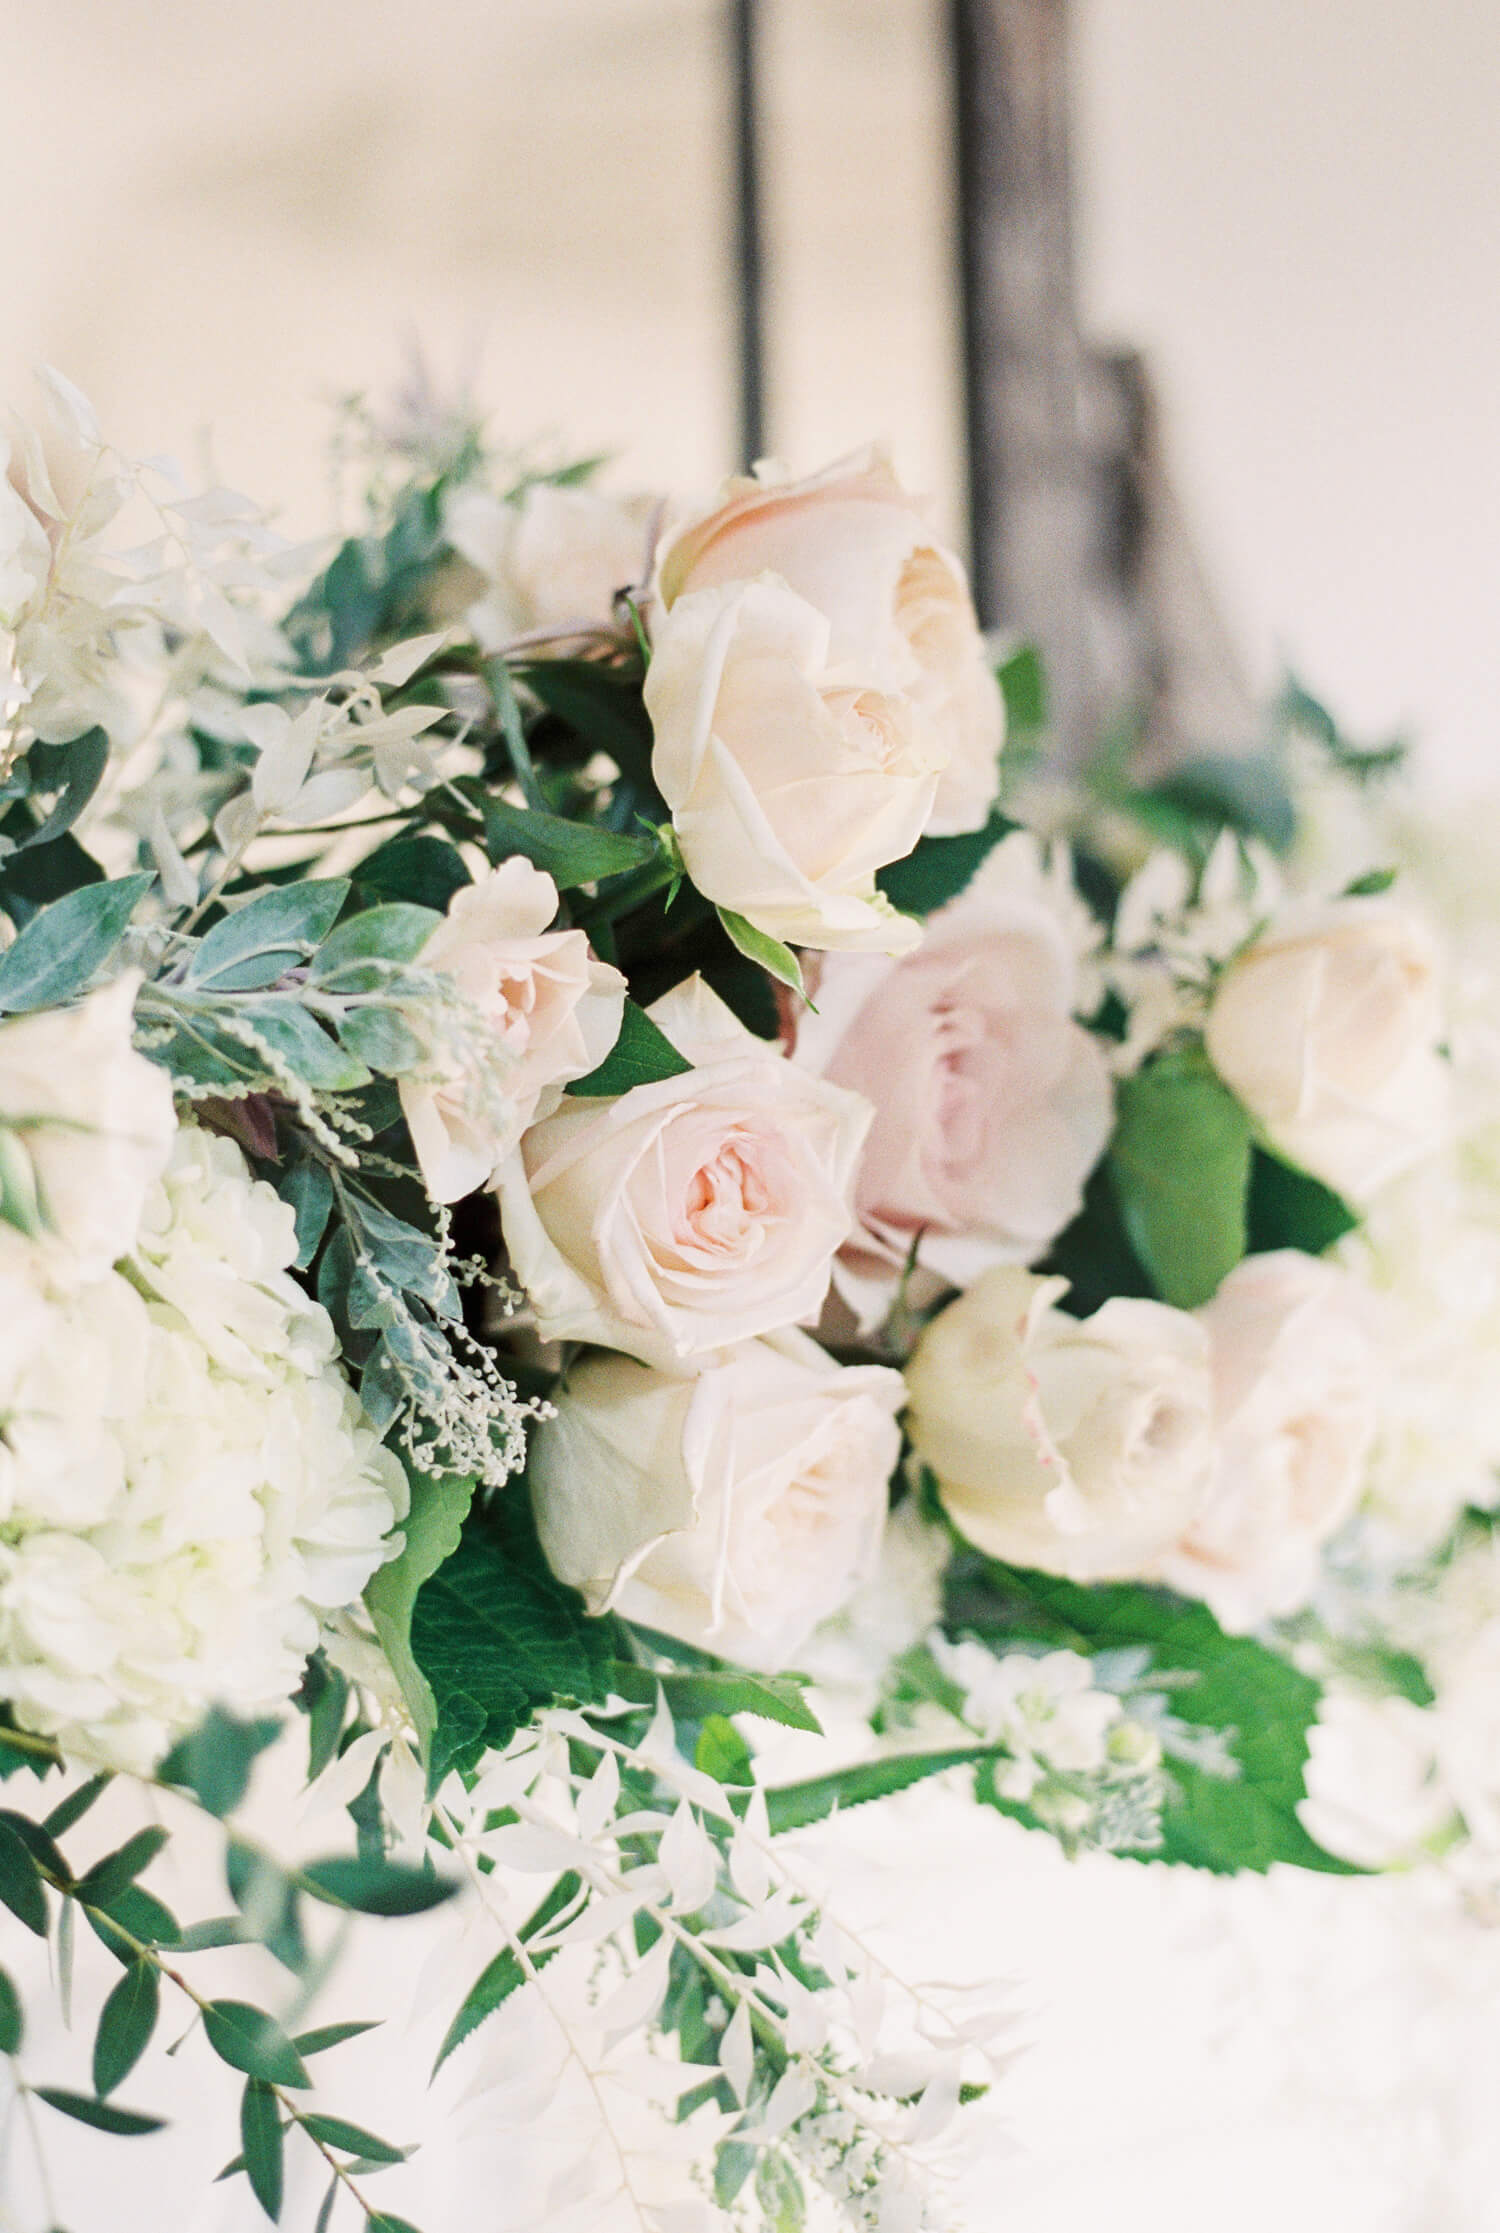 big blousy roses for fine art floral wedding installation with muted colour palette by Flori & Fern for fairytale Thicket Priory Wedding - Photo by Cristina Ilao www.cristinailao.com